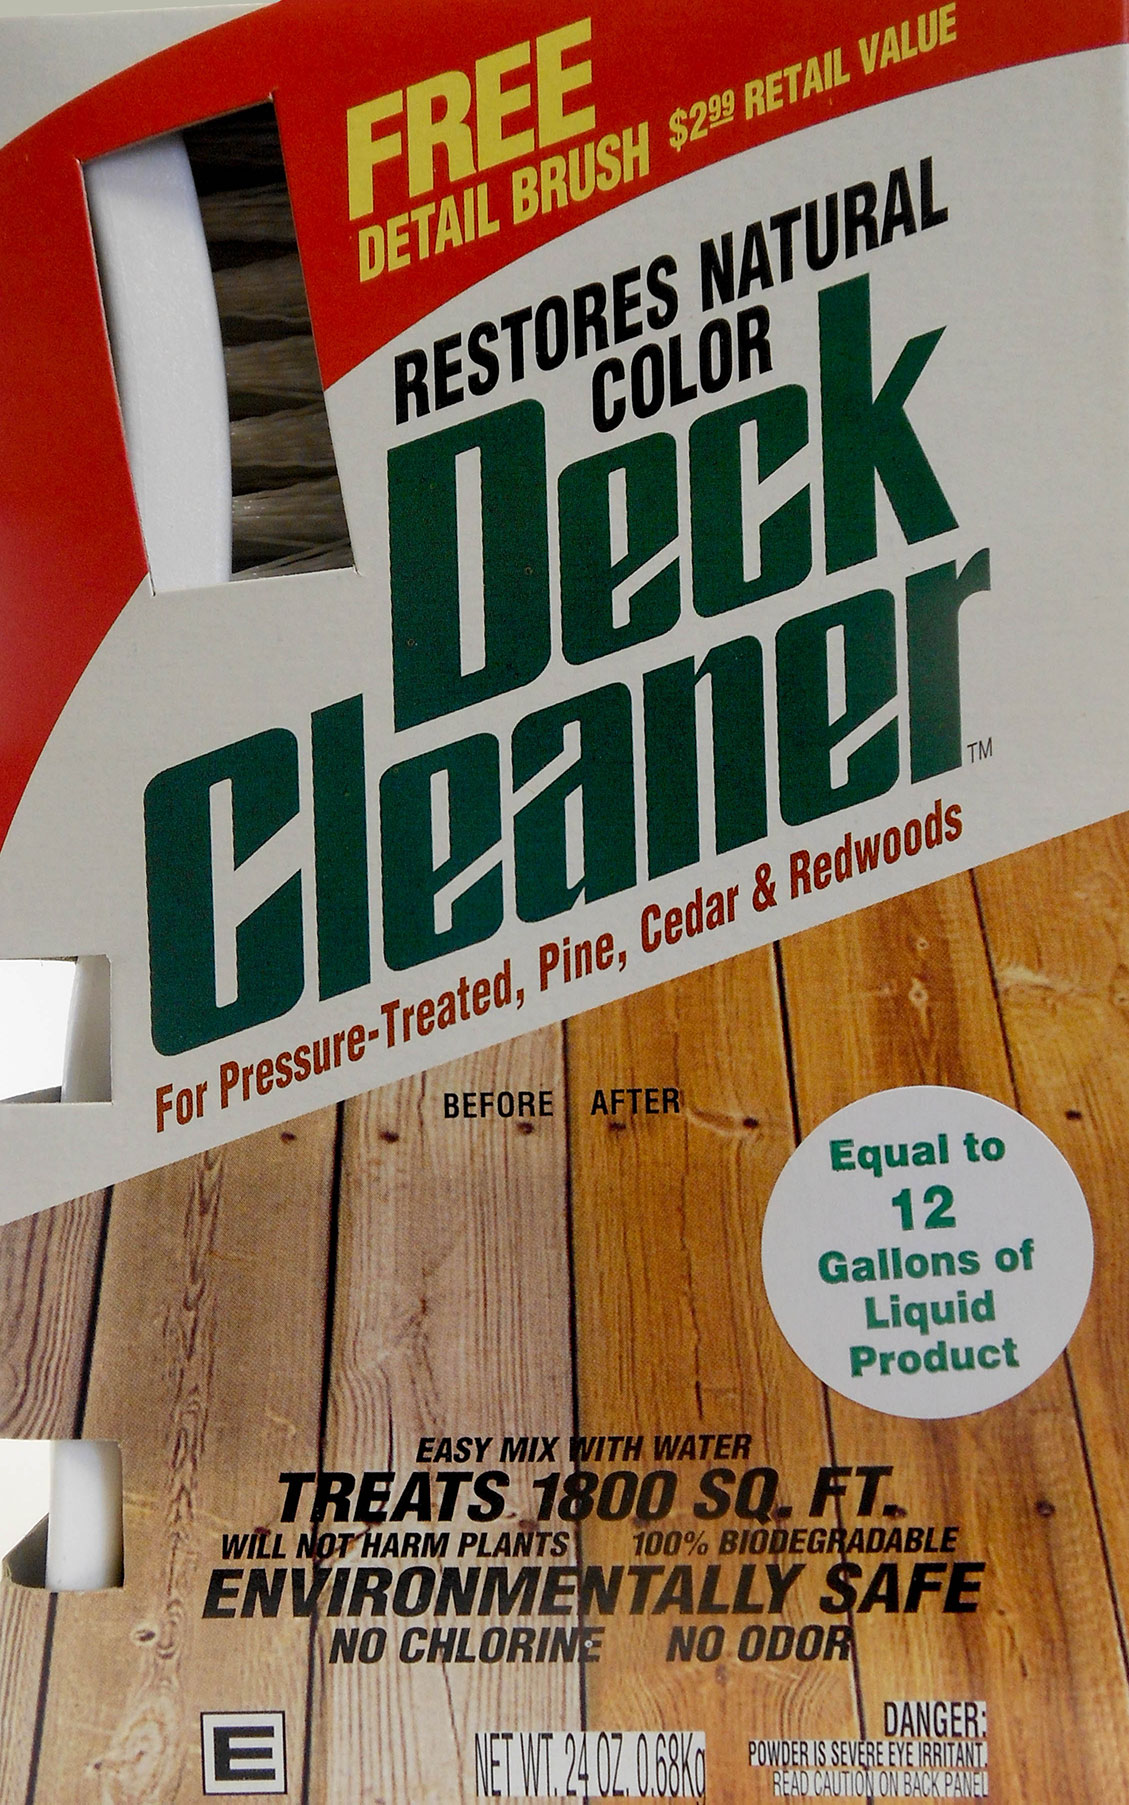 Deck Cleaner, Engleside, Deck, Wood, Outdoor Cleaner, Cleaner